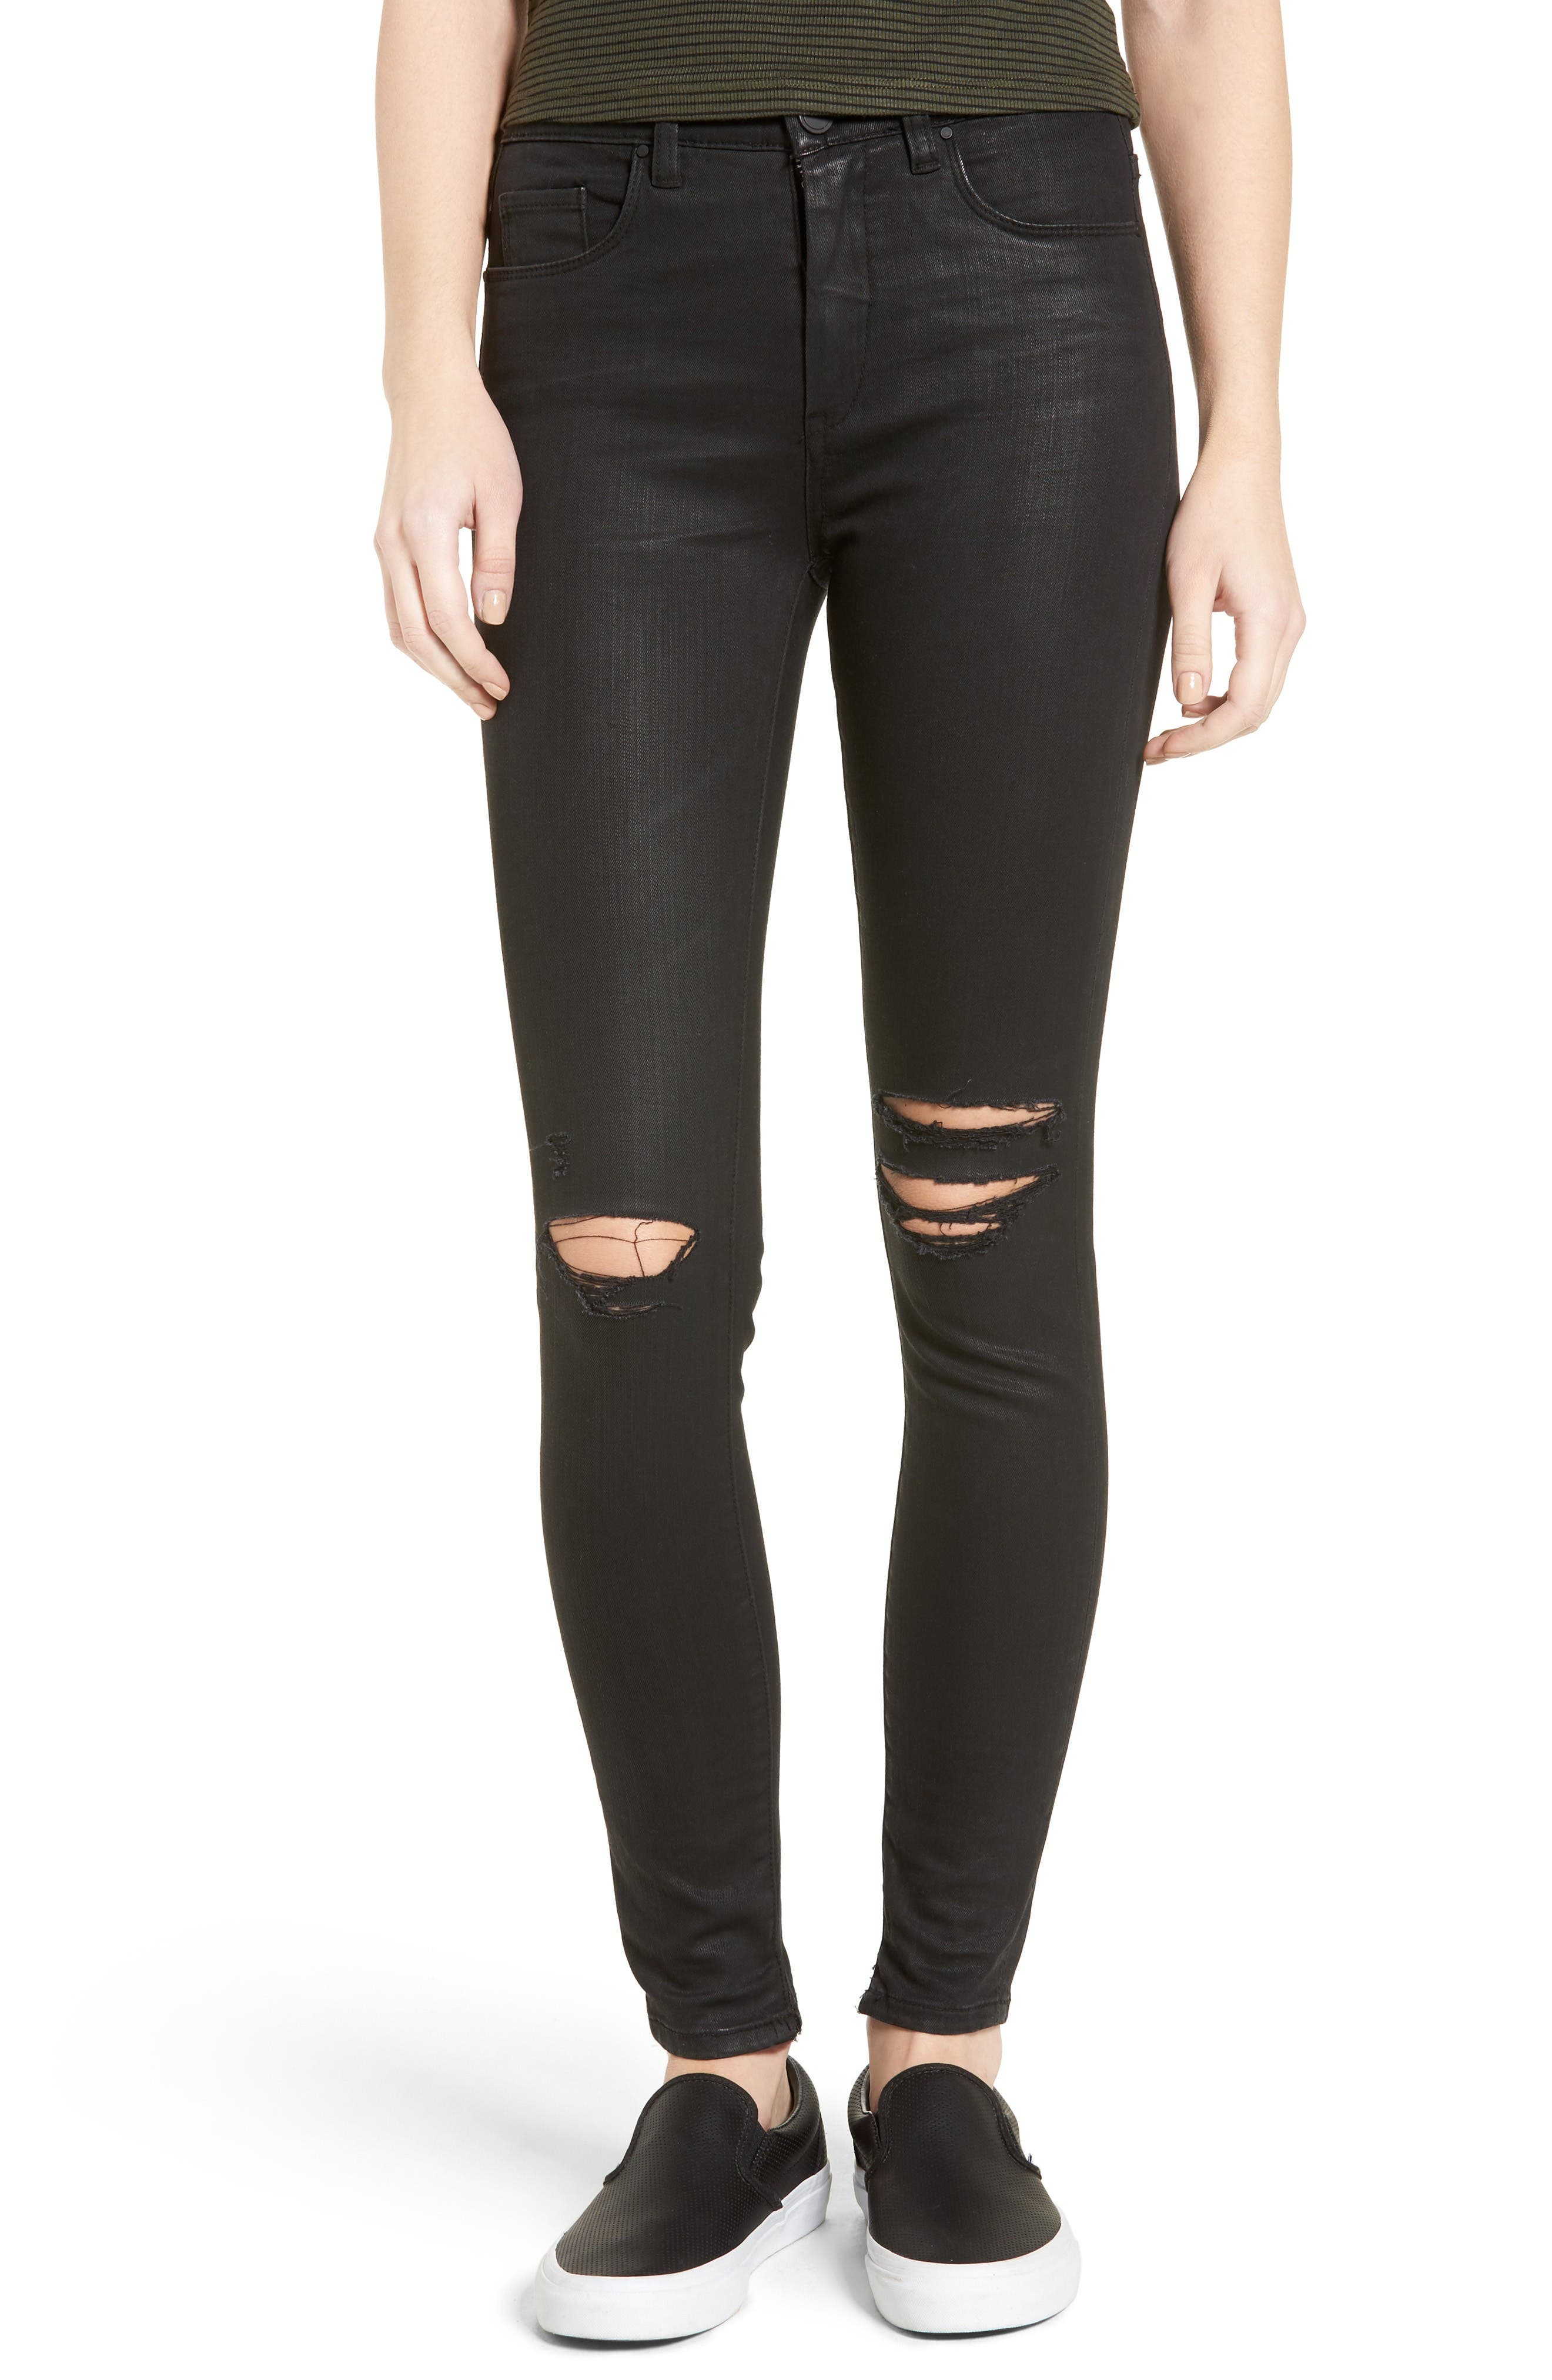 'All Lacquered Up' Coated Skinny Jeans,                             Main thumbnail 1, color,                             All Lacquered Up